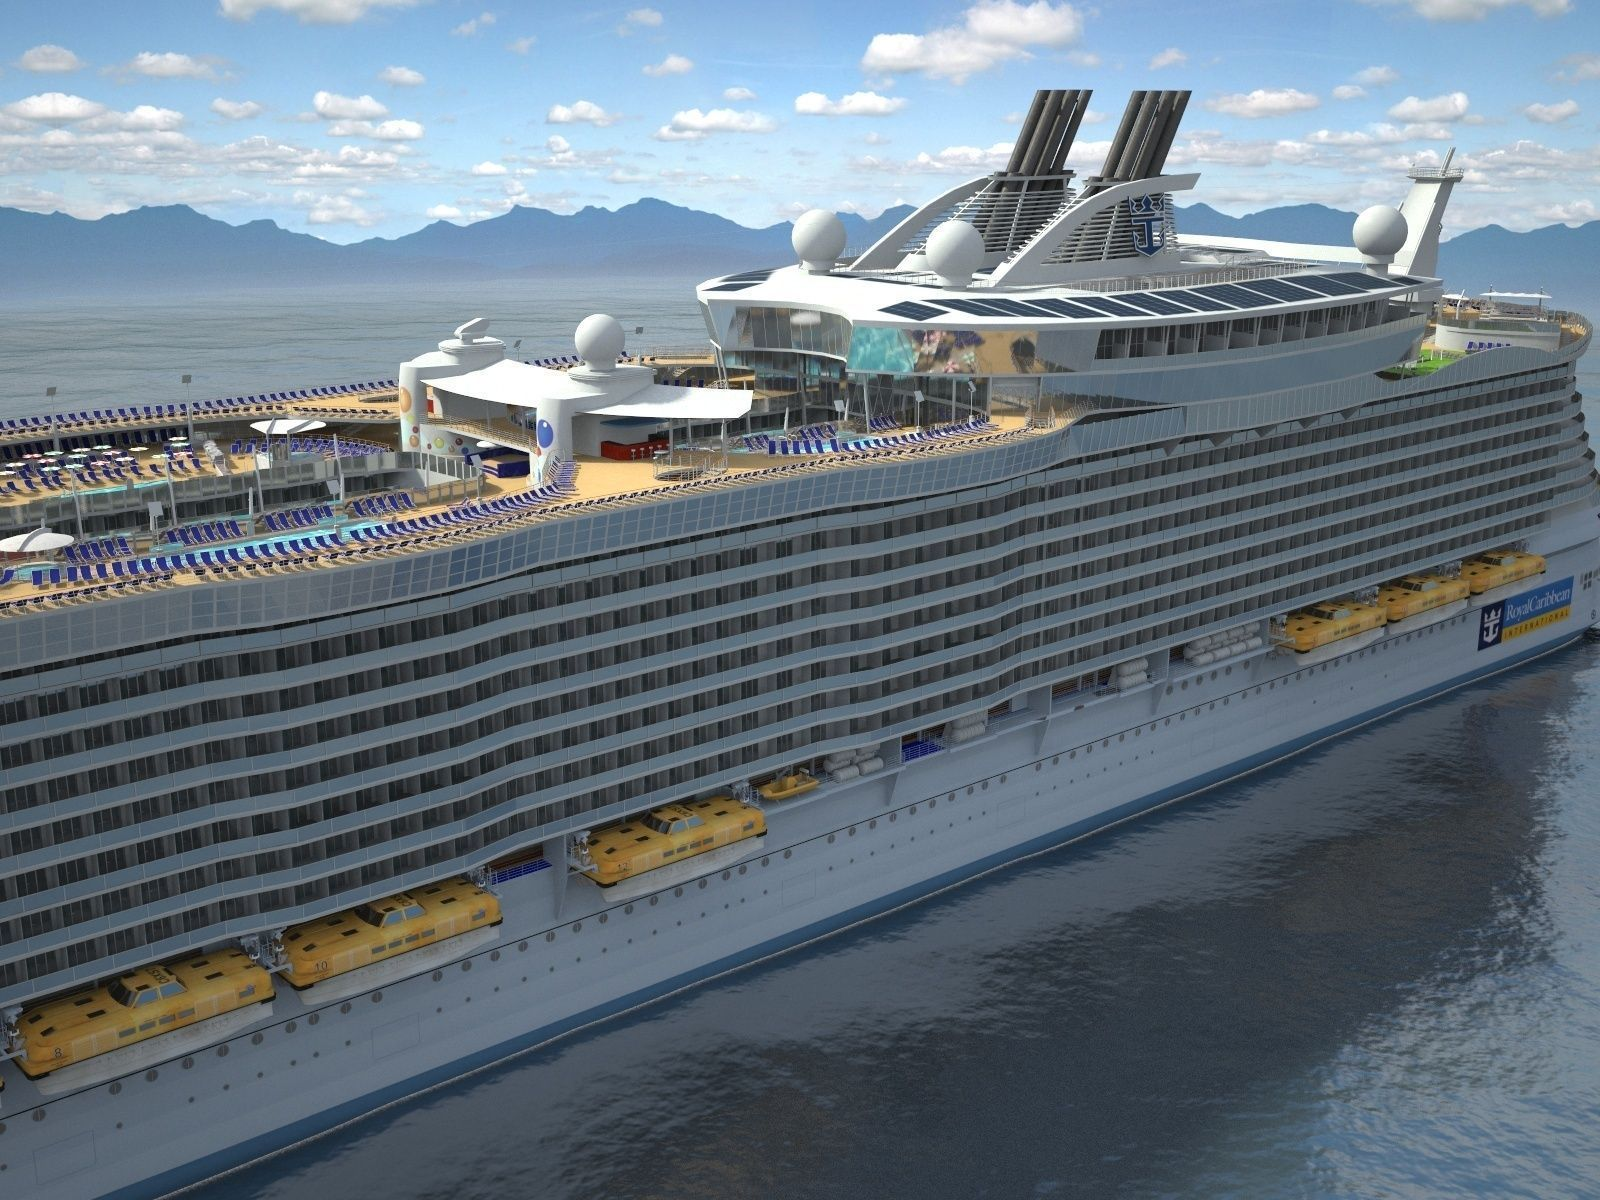 Oasis Of The Seas Cruise Ship 3D Model Max Obj 3ds Fbx